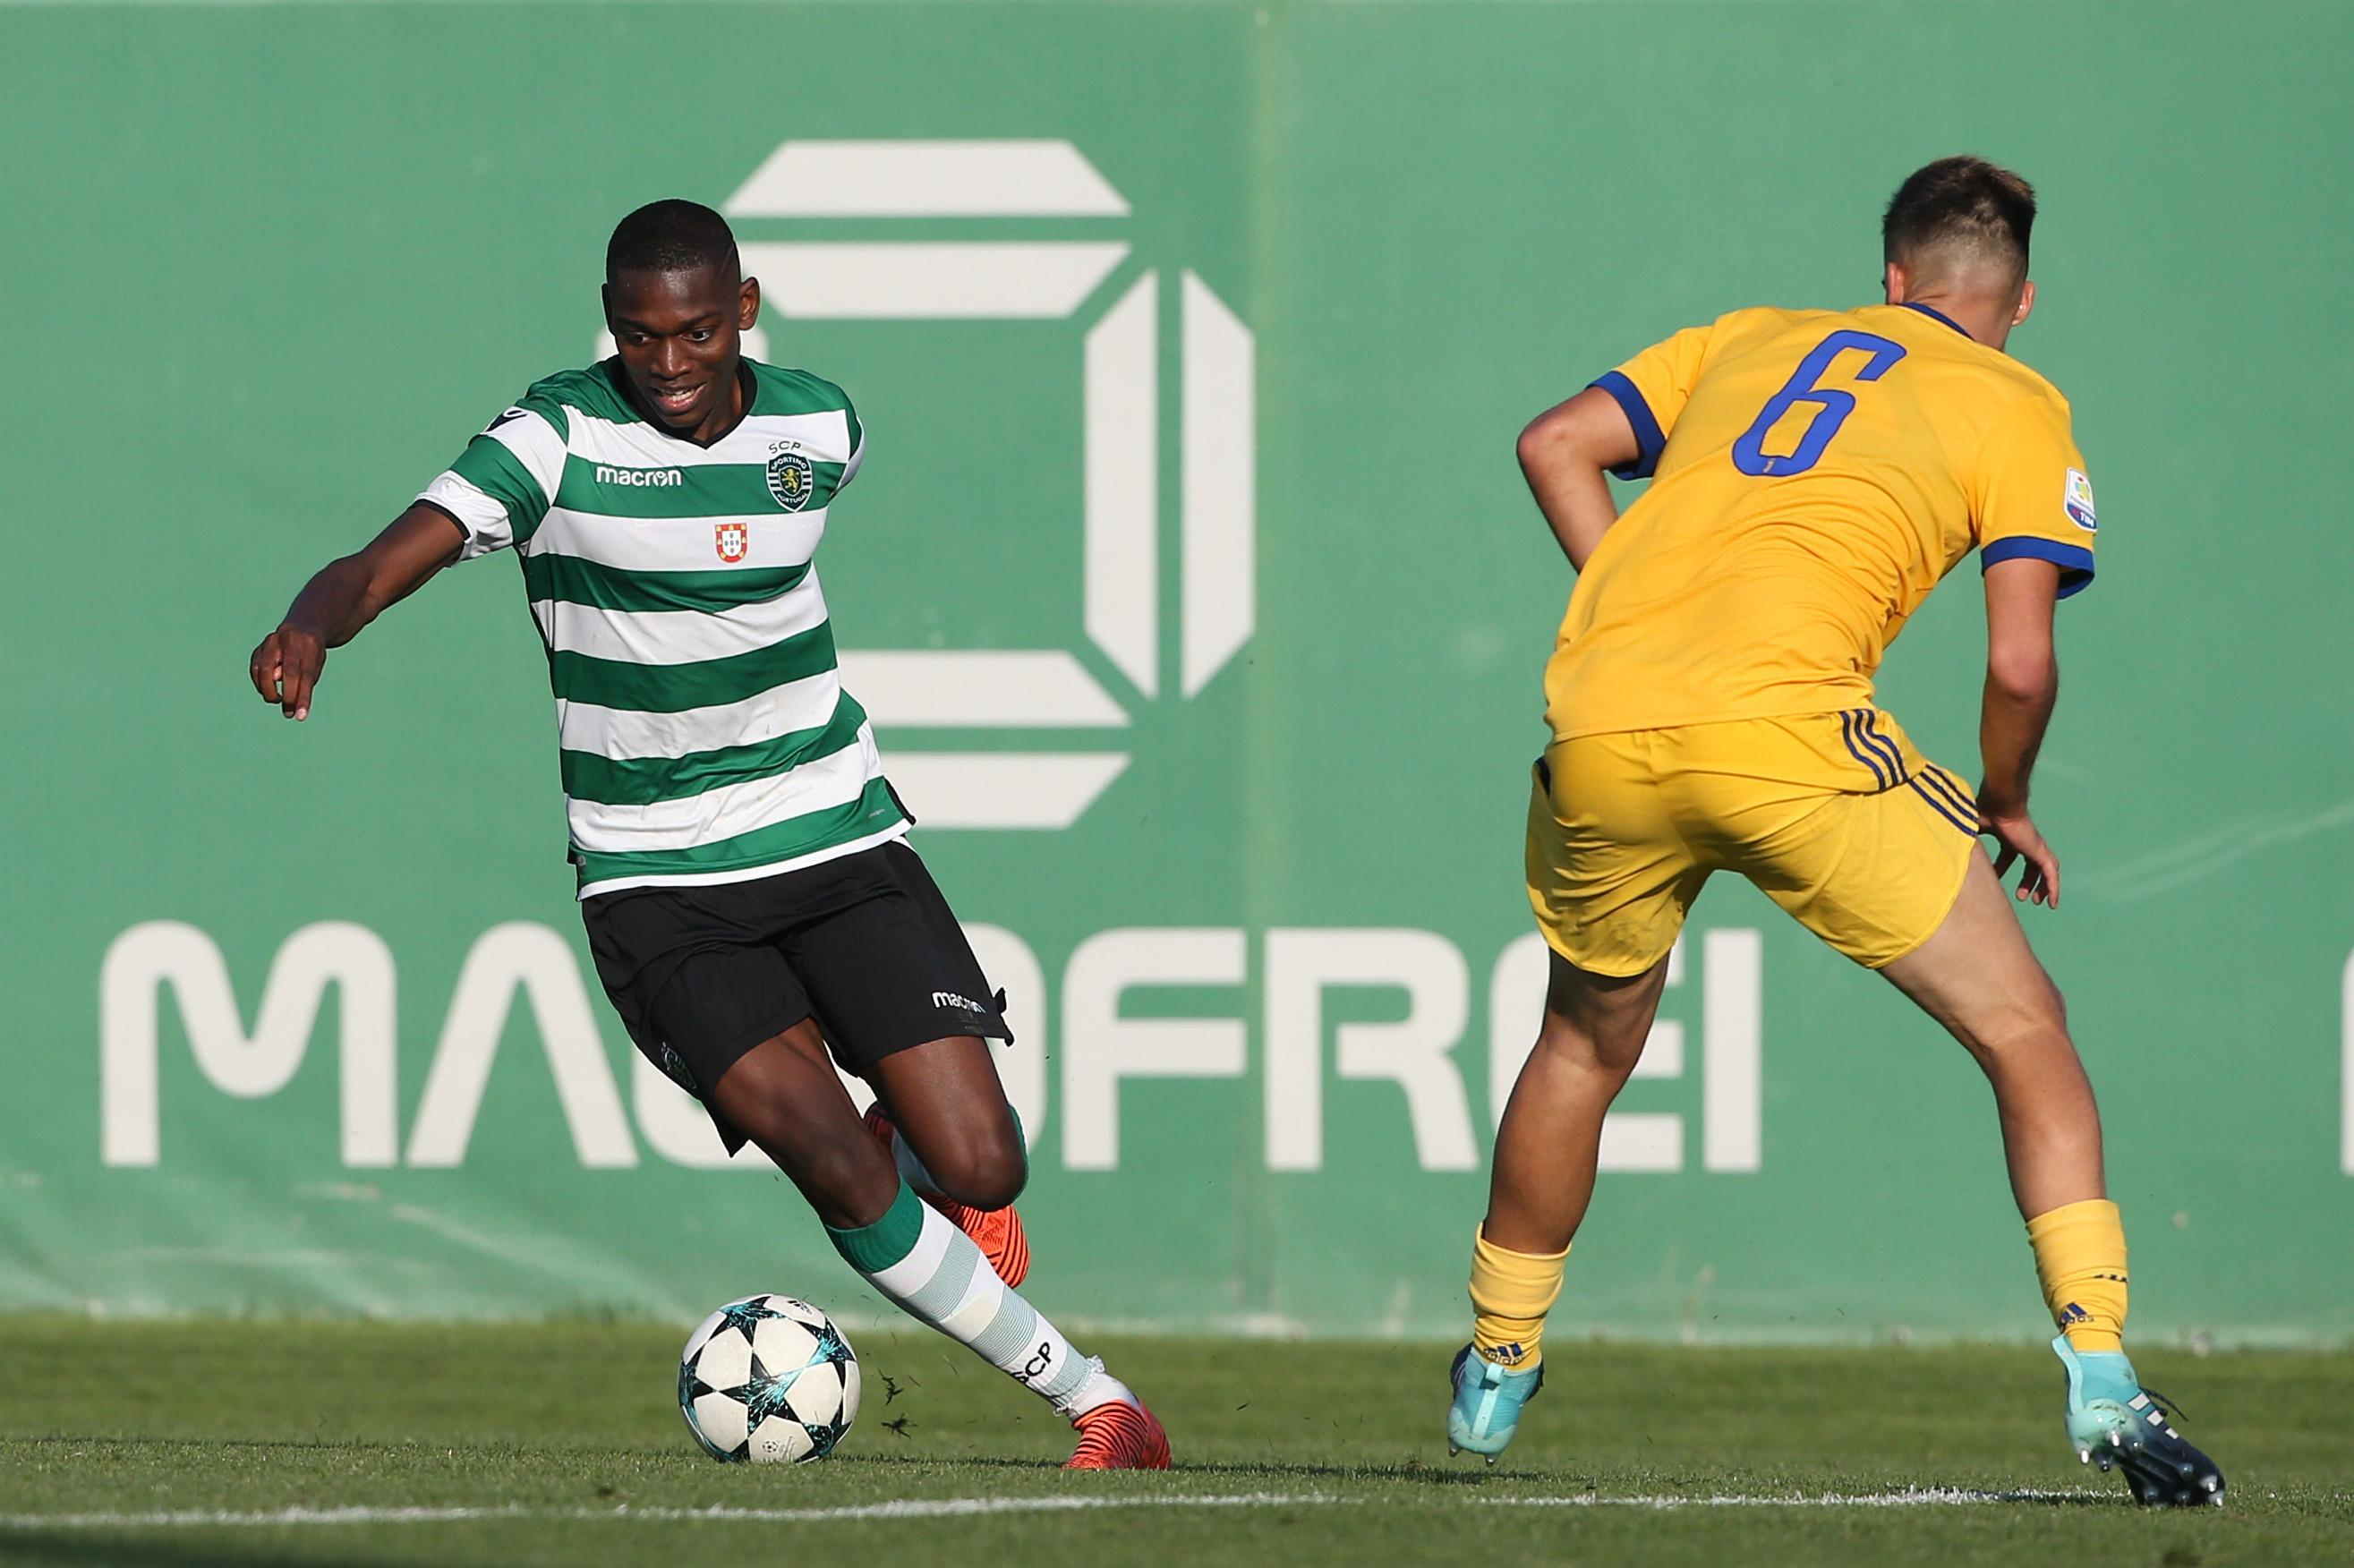 Rafael Leao up against Juventus defender Joao Serrao in a Uefa Youth League match